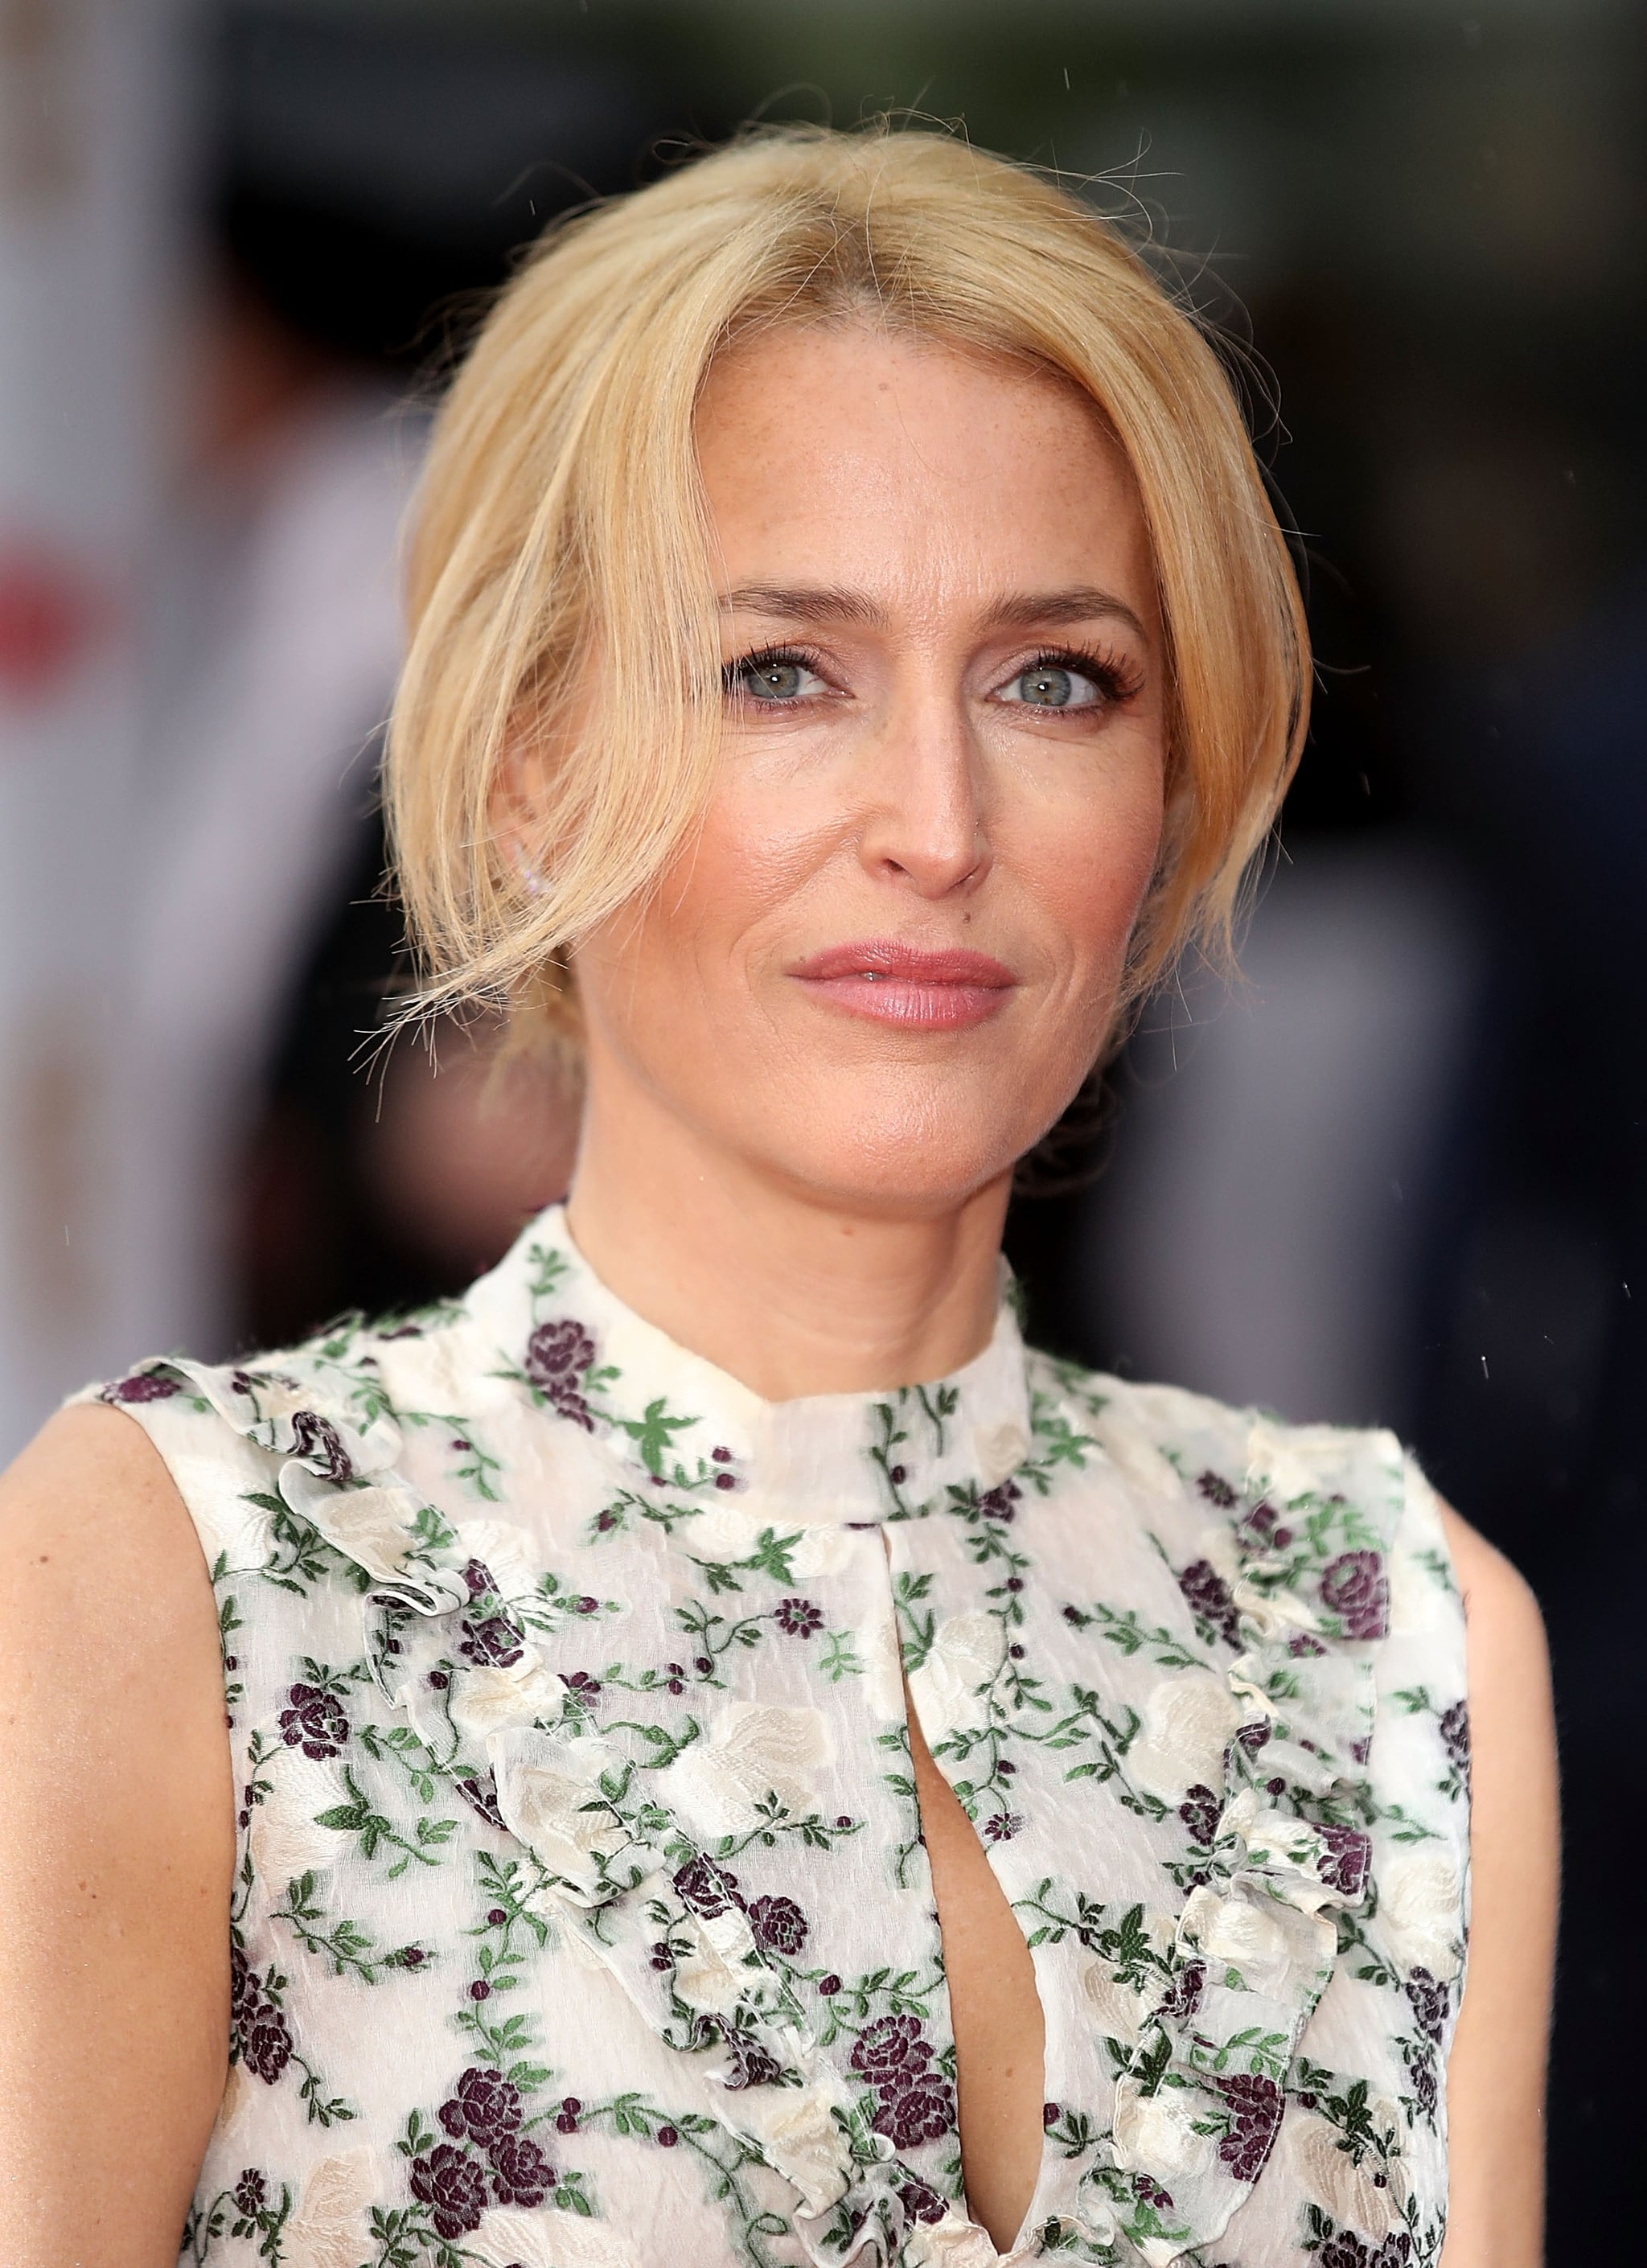 Celebrites Gillian Anderson nudes (19 photo), Tits, Paparazzi, Twitter, see through 2017